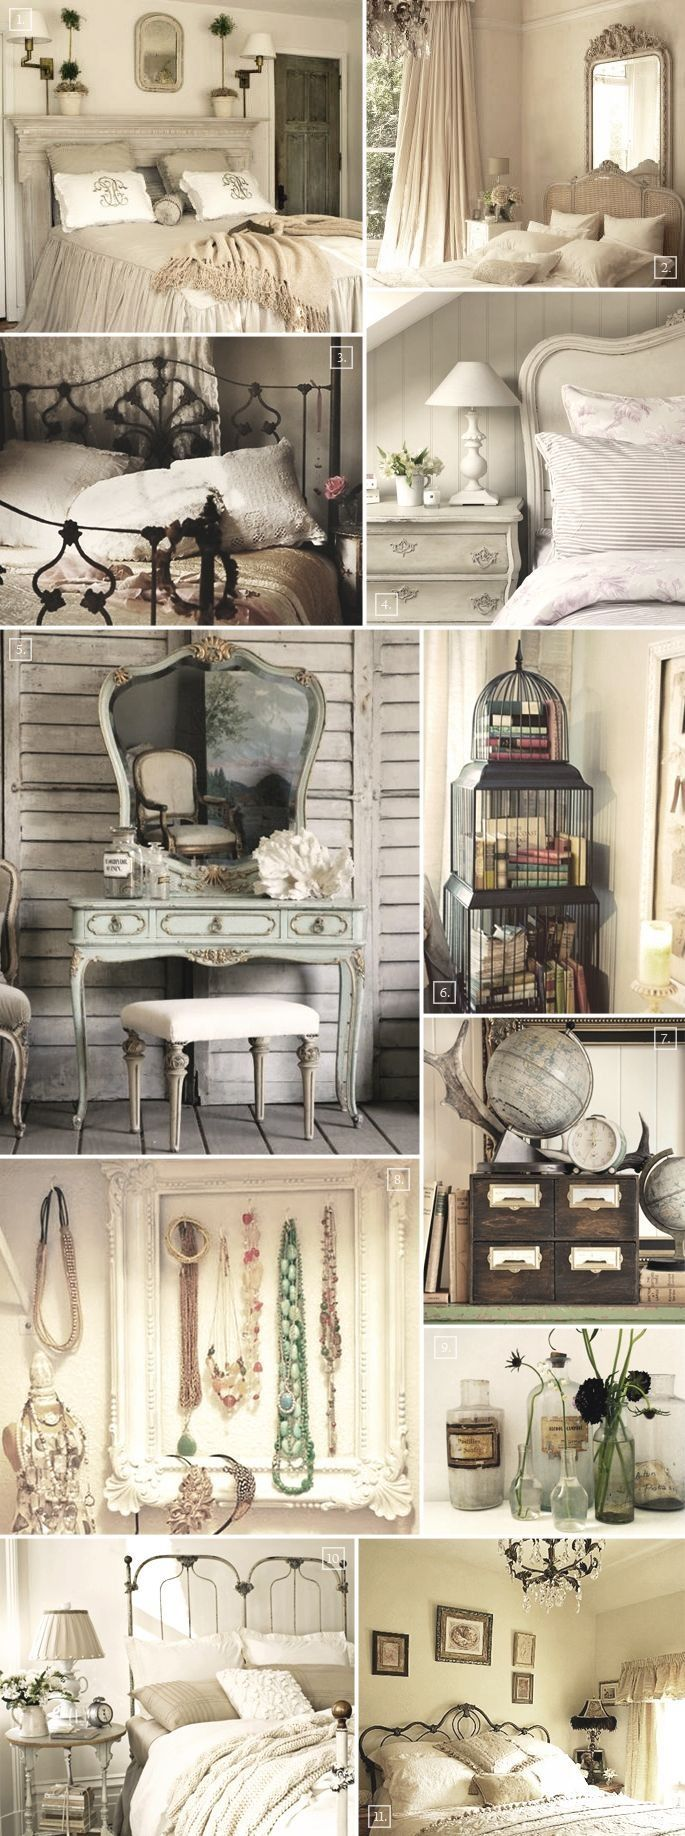 I love everything about this! I can't wait to have my own place again! - http://myshabbychicdecor.com/i-love-everything-about-this-i-cant-wait-to-have-my-own-place-again/